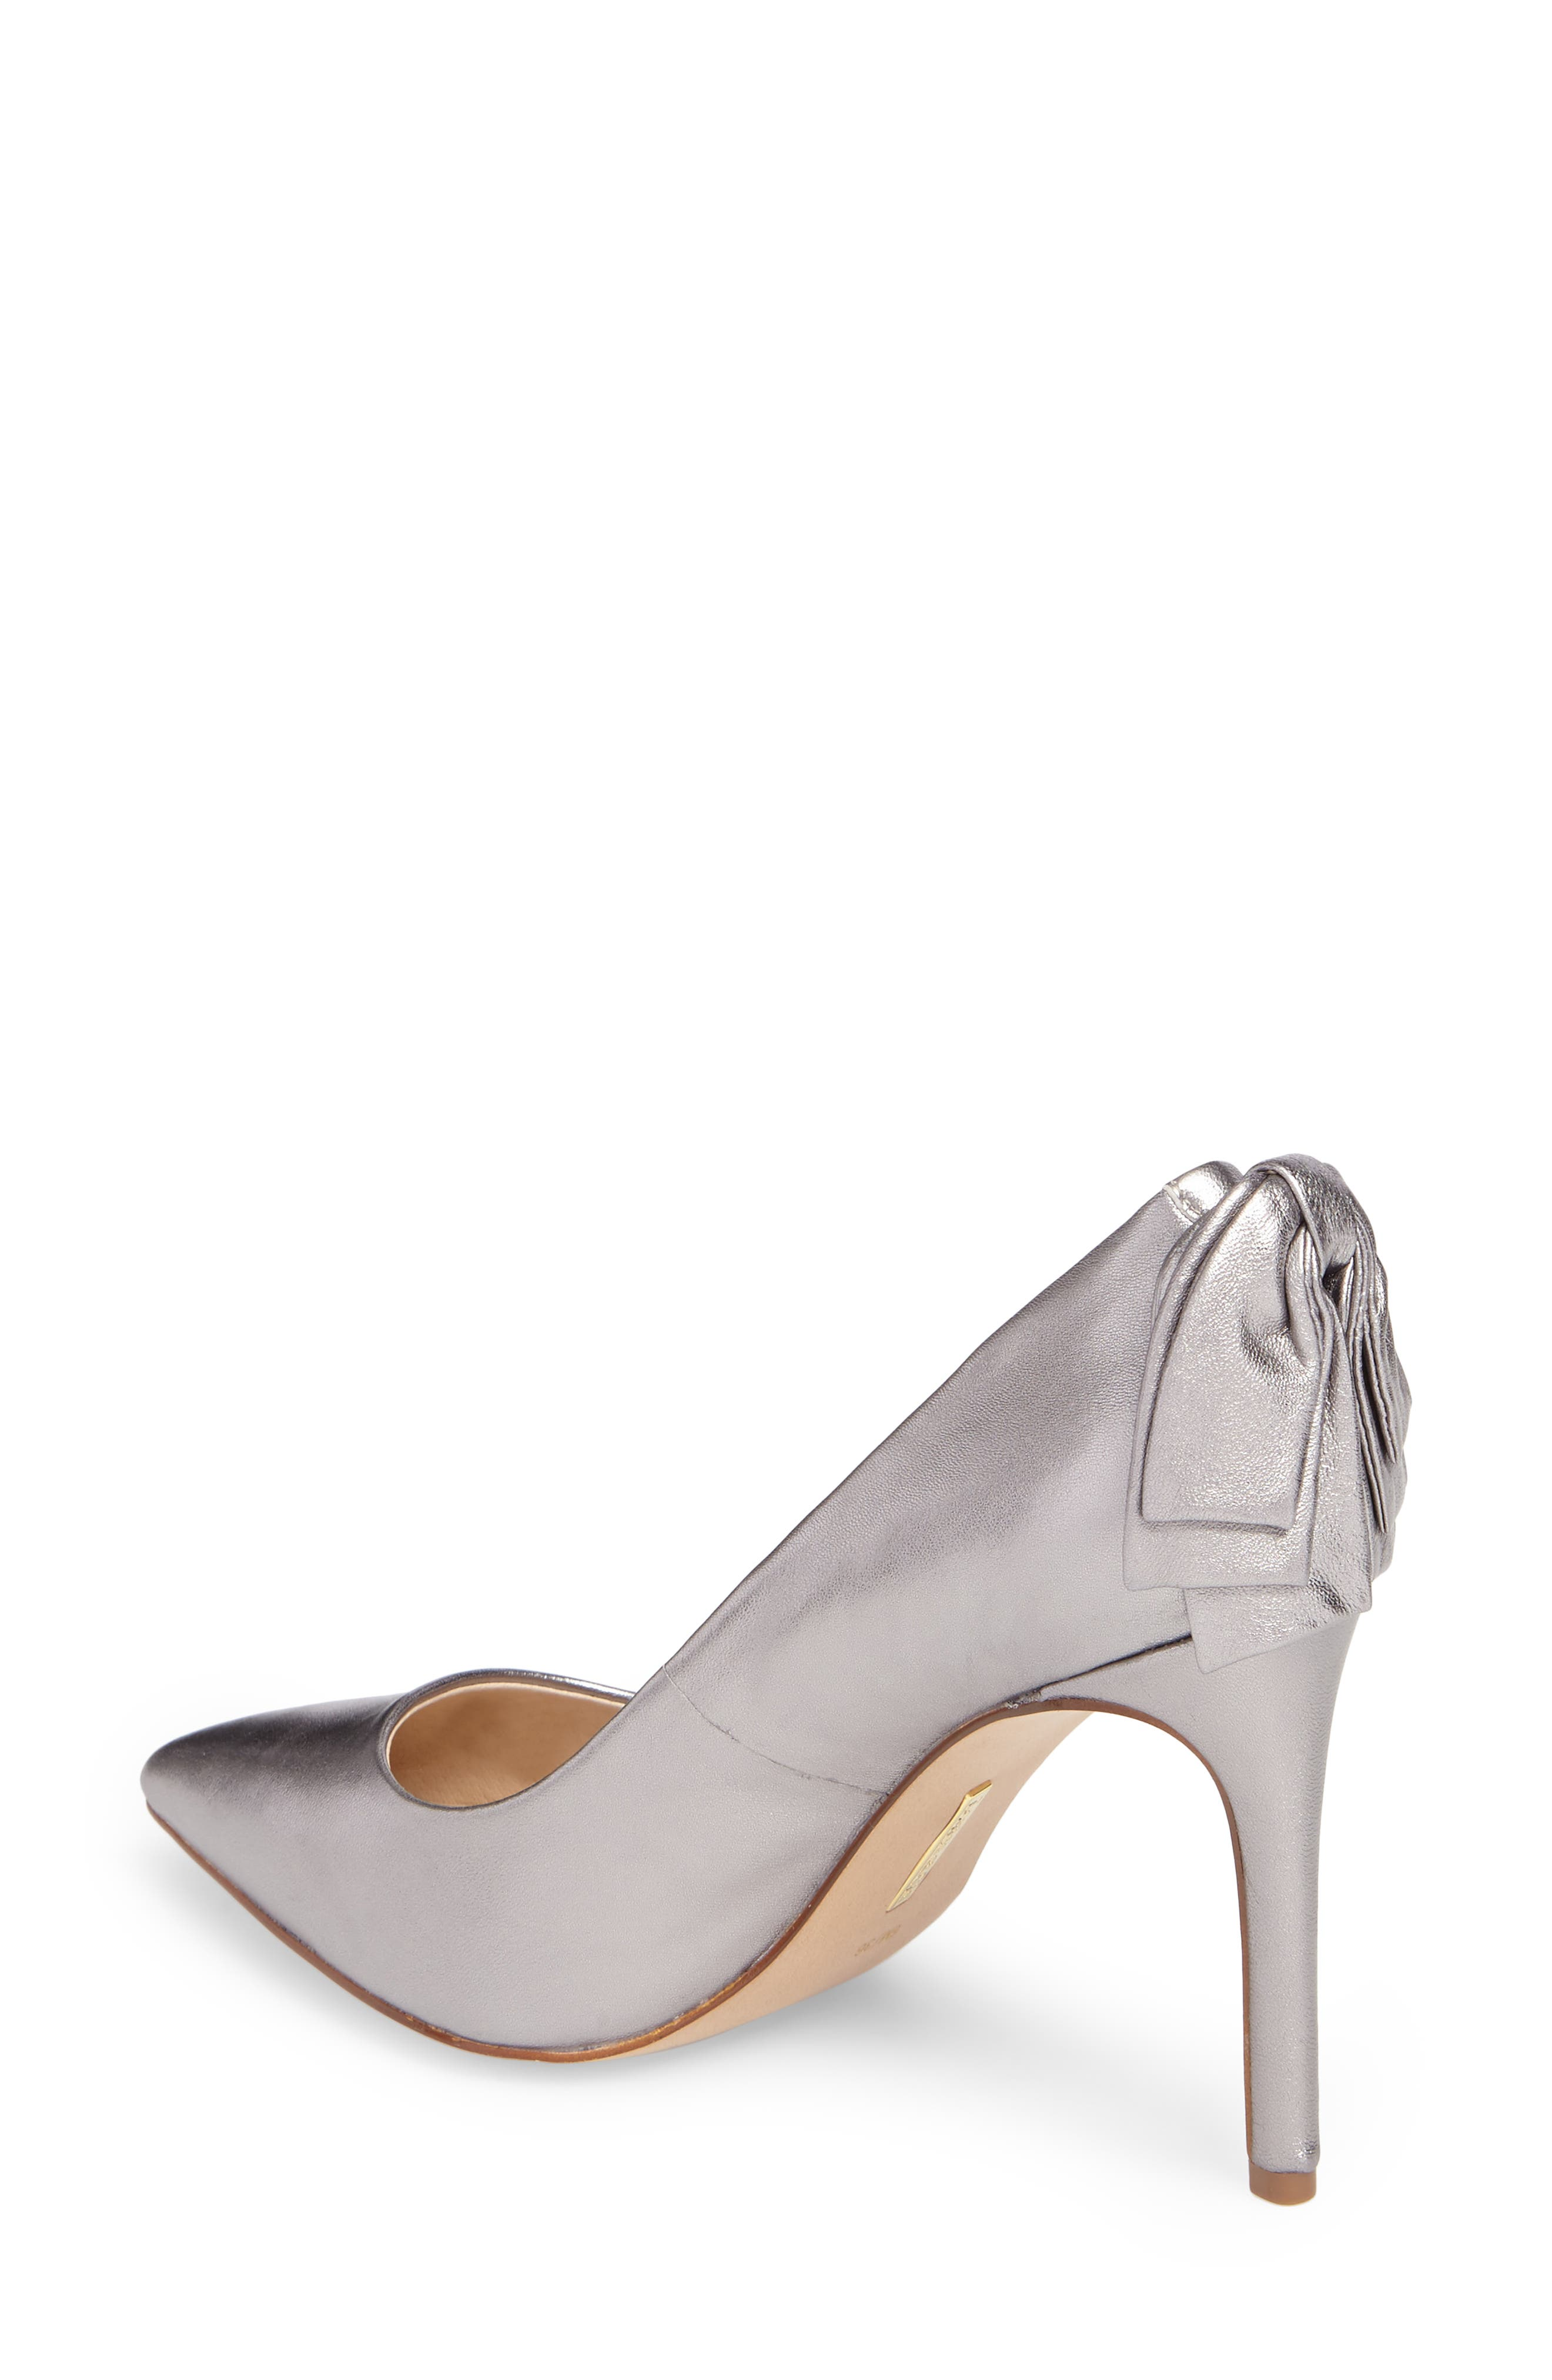 Josely Pointy Toe Pump,                             Alternate thumbnail 5, color,